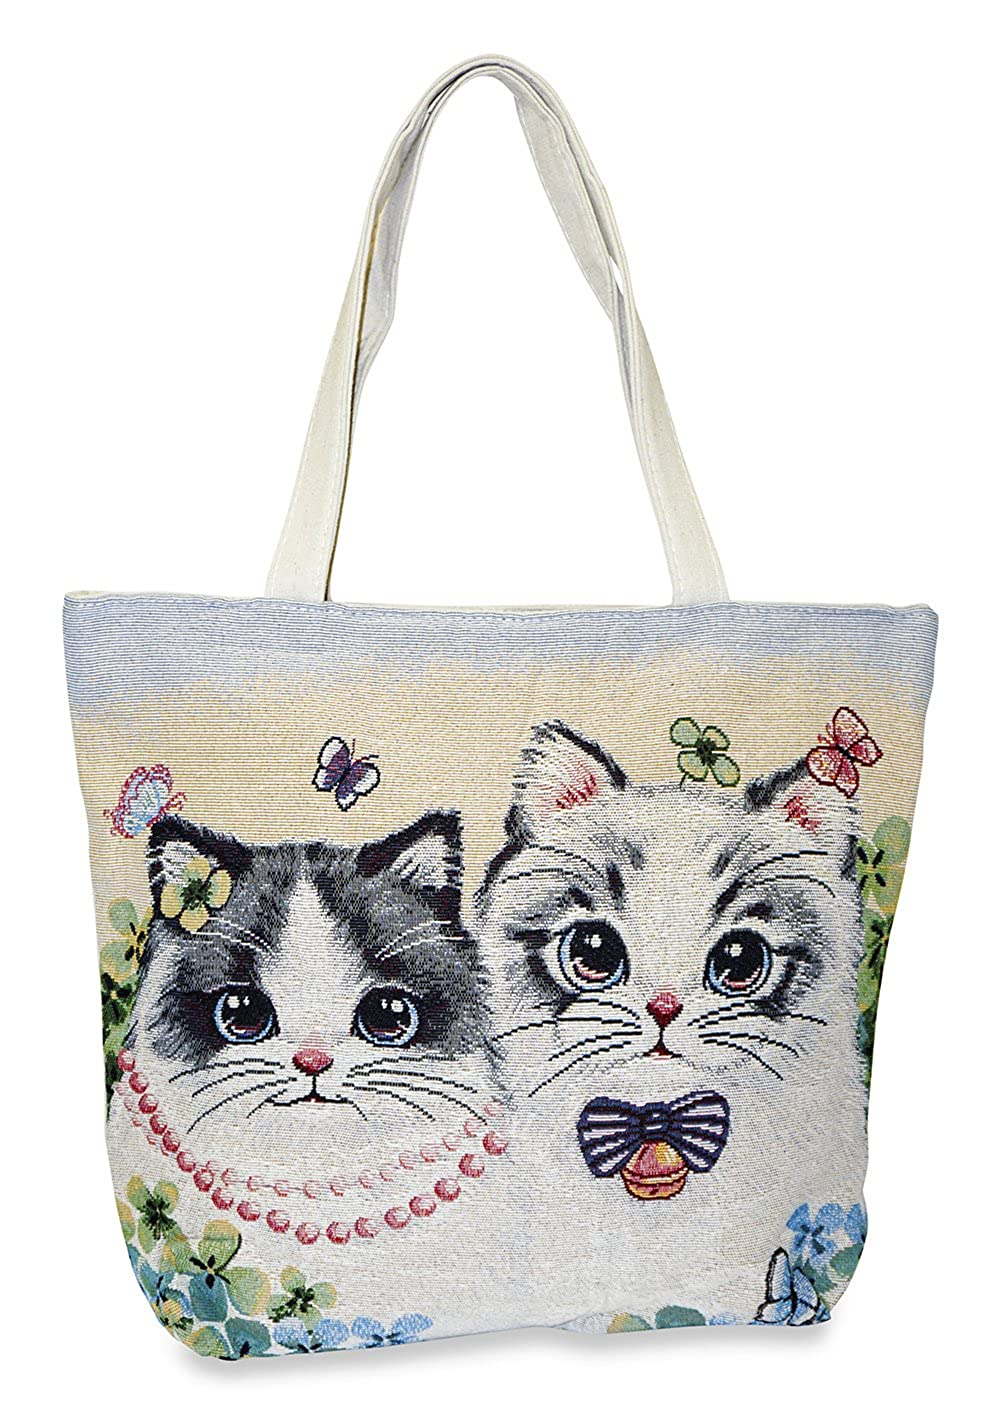 0c50bb2299 Amazon.com | Cat Tapestry Tote Bag X-Large, Pretty Beige | Travel Totes